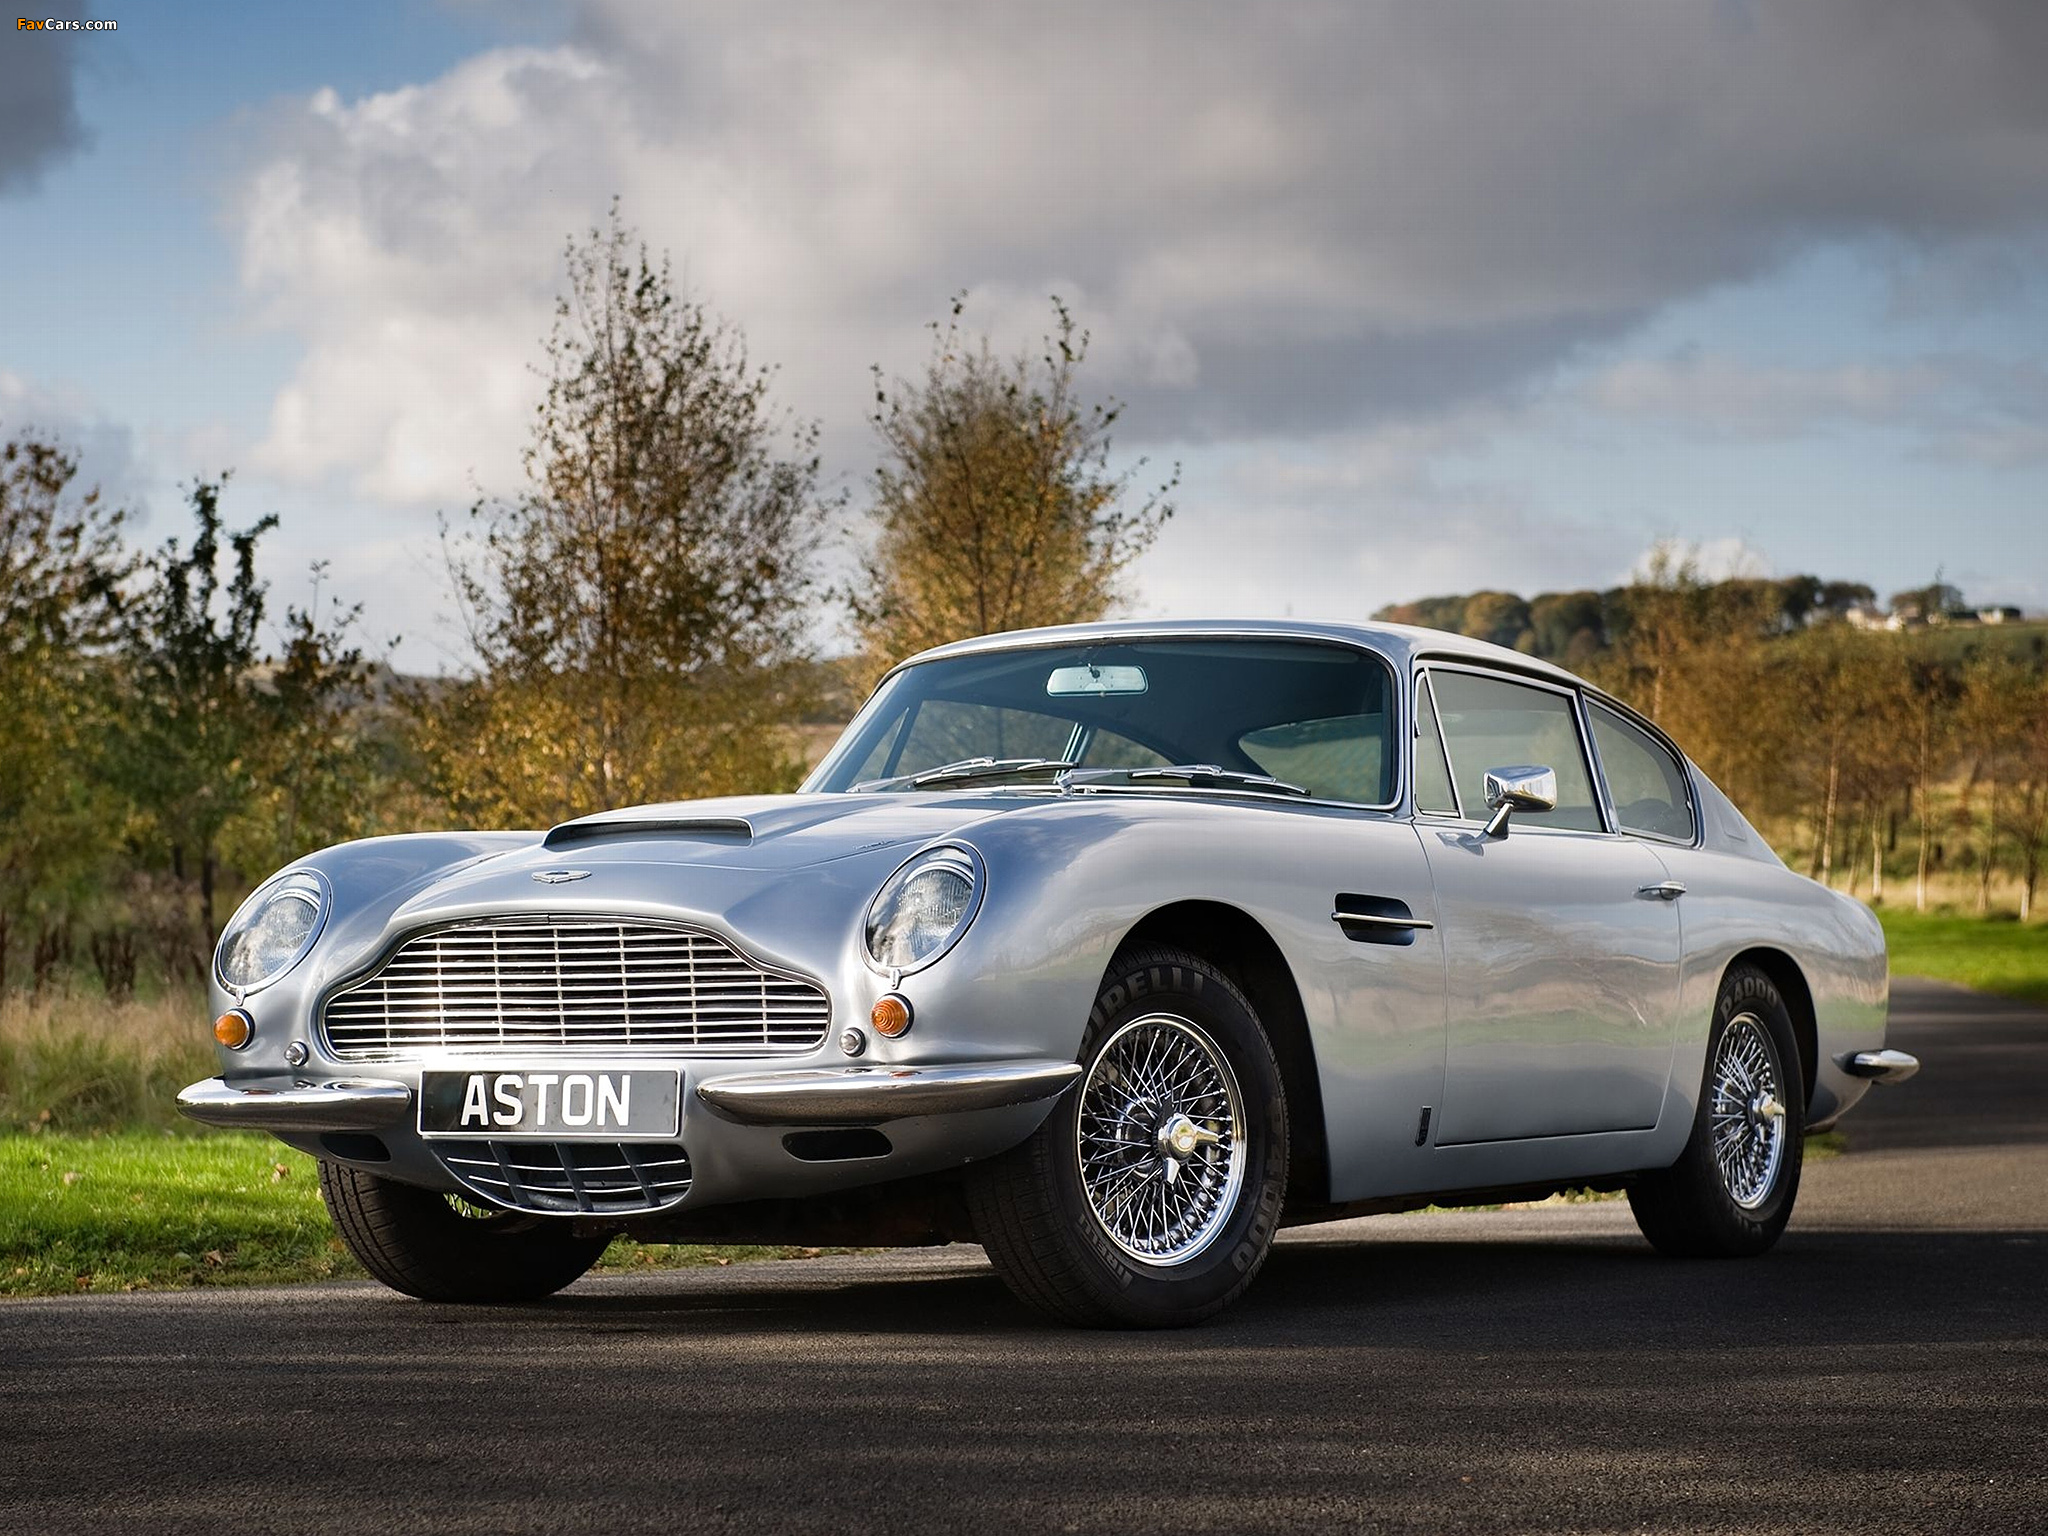 Images Aston Martin Db6 Uk Spec 1965 1969 146379 moreover Wallpaper 01 together with Aston Martin Db6 Volante Vantage Specification 1967 additionally Lagonda as well Aston Martin DB6 Volante 30093. on aston martin db6